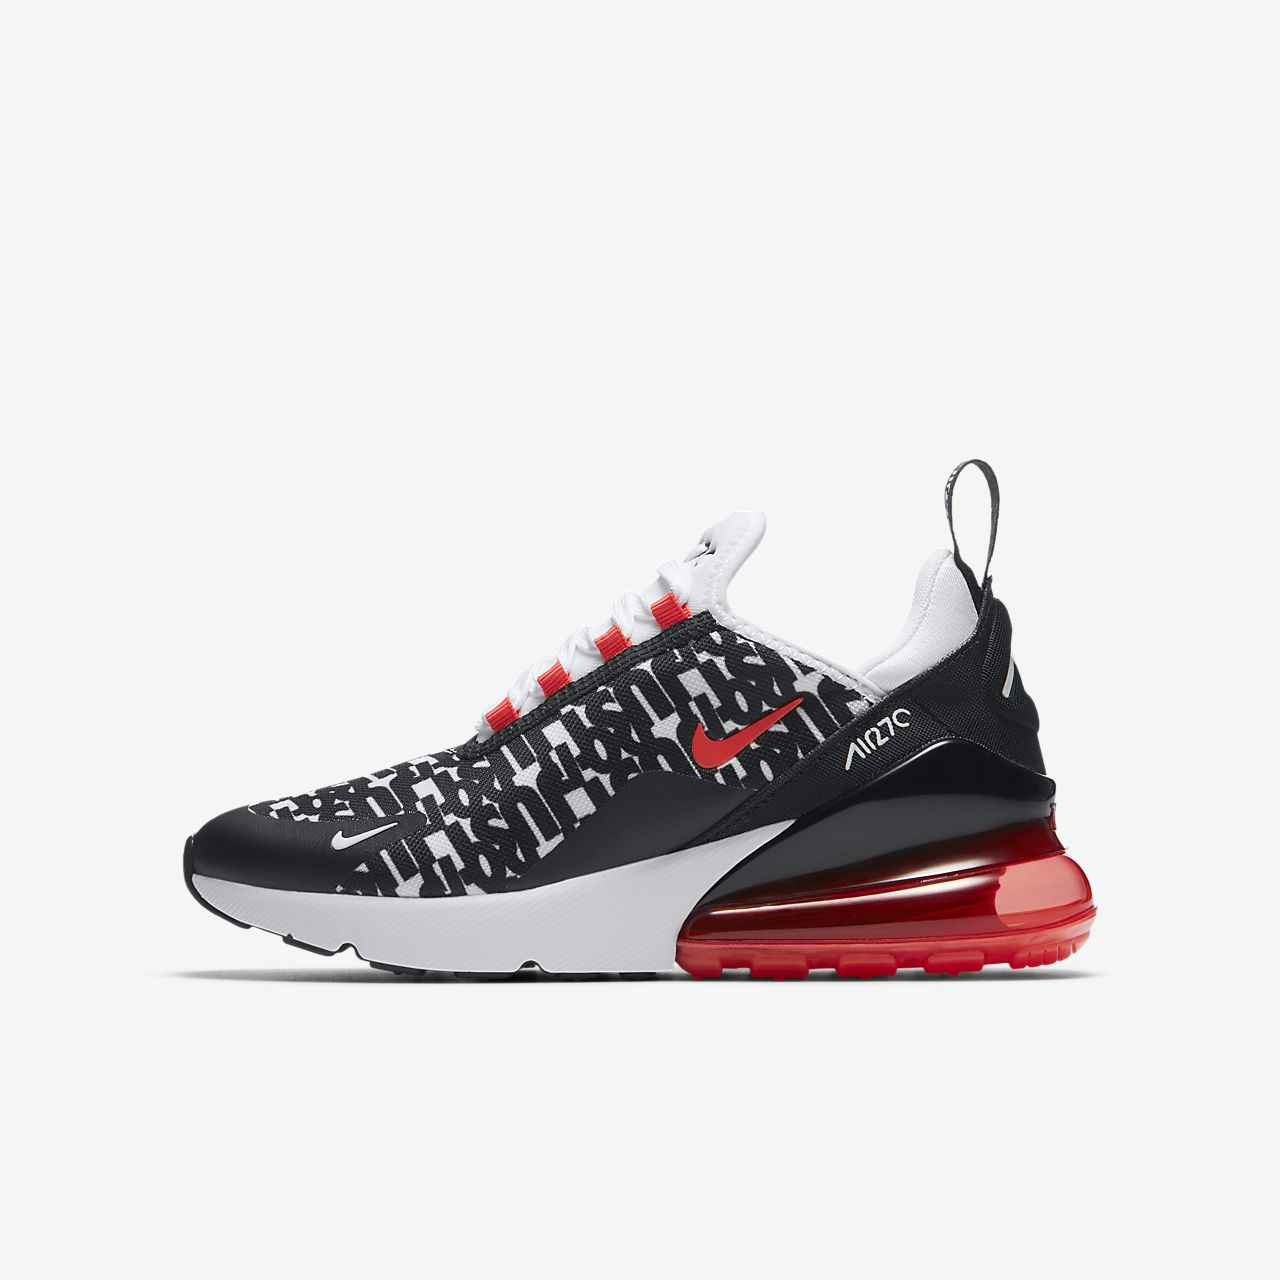 53d0446fdcb8b1 promo code for air max shoes for boys red and black 9dba6 13066